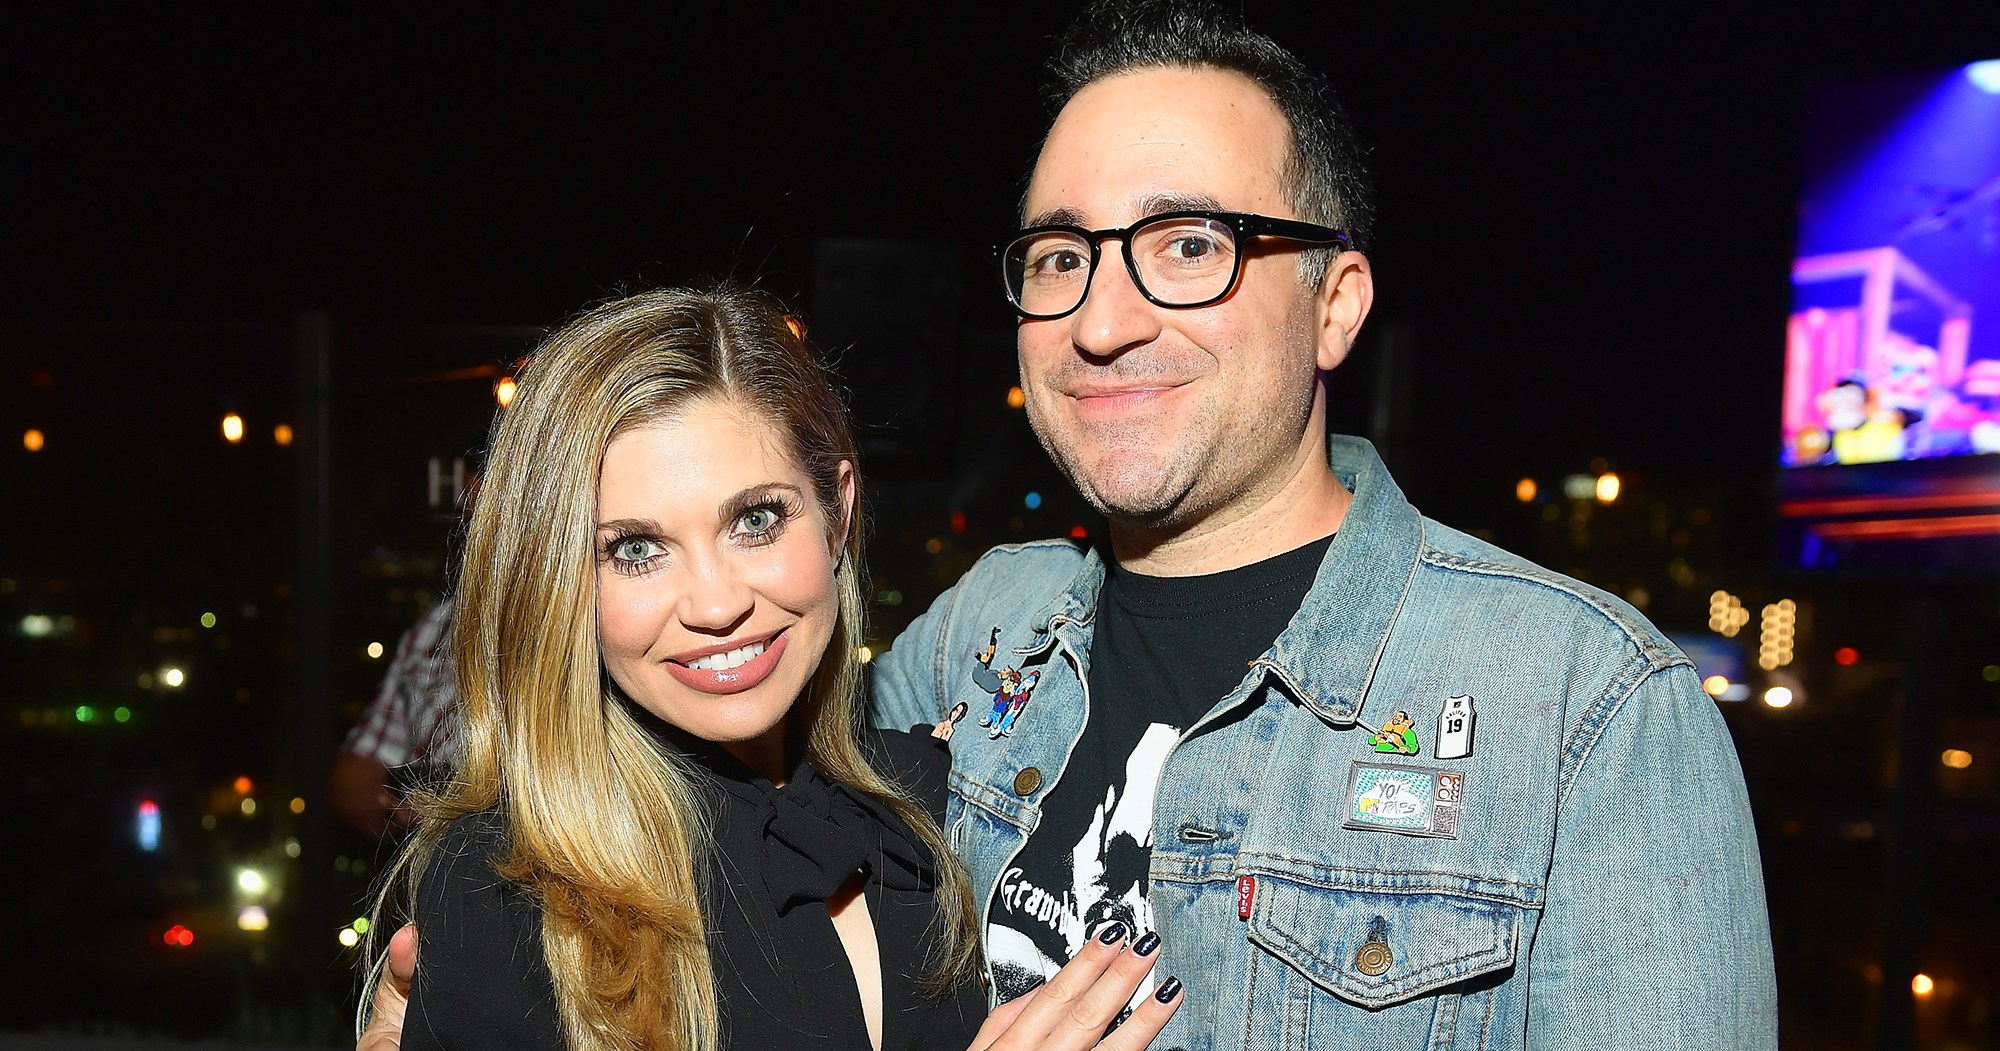 Danielle Fishel Is Pregnant, Expecting Baby With Jensen Karp